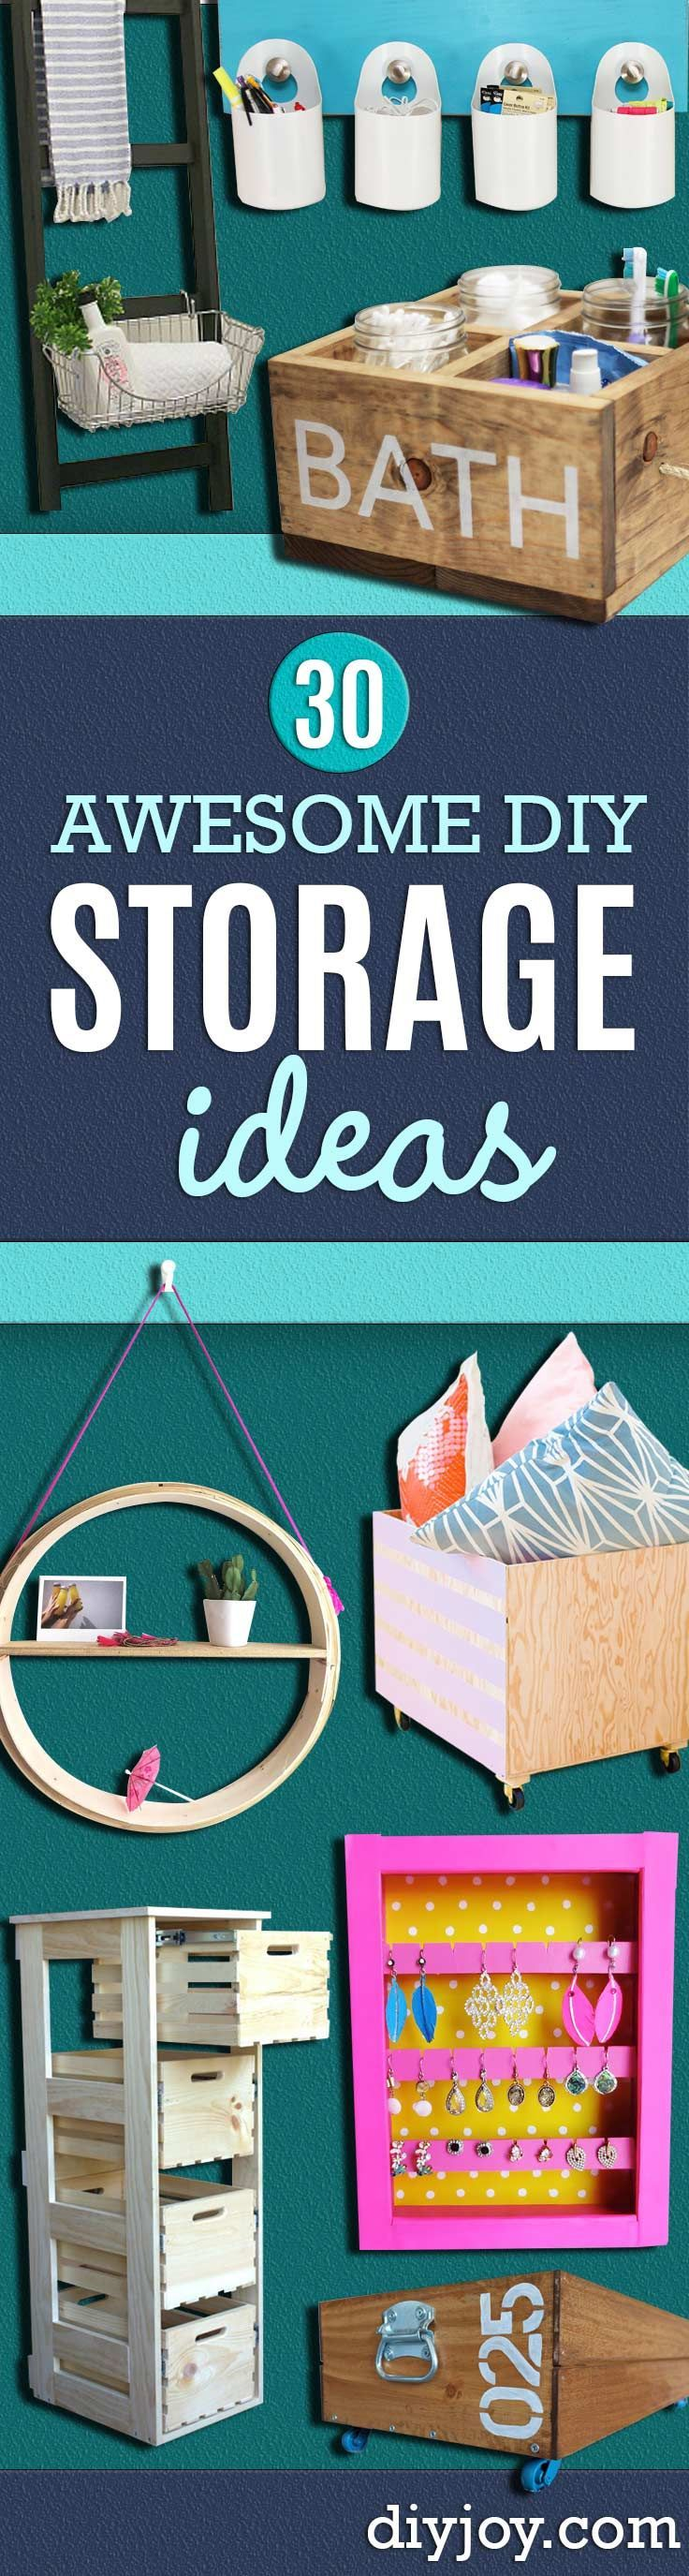 1241 best ocd about organization images on pinterest good 30 awesome diy storage ideas solutioingenieria Images